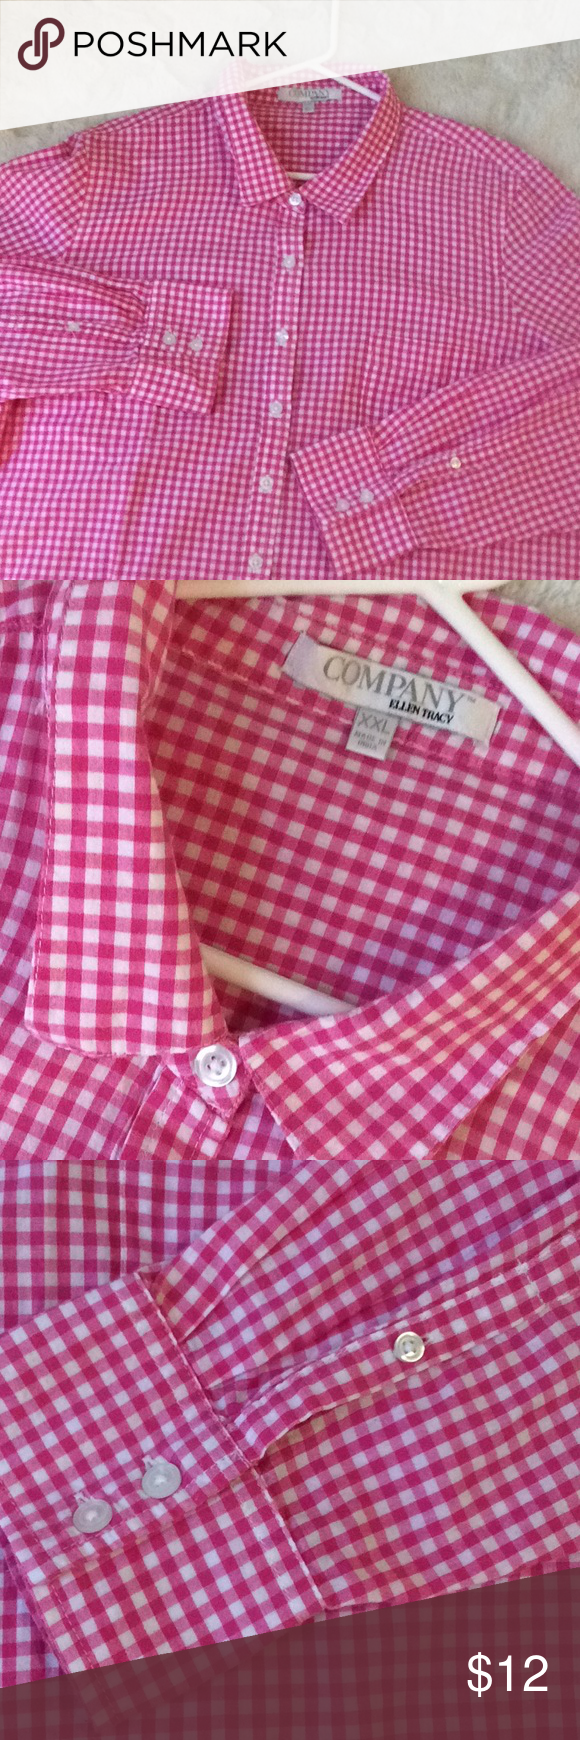 6ddd003170f70e Company Ellen Tracy Pink Gingham Shirt 100% cotton hot pink gingham shirt...what's  not to like!?!?🌸🌺🌷perfect year round! Ellen Tracy Tops Button Down ...